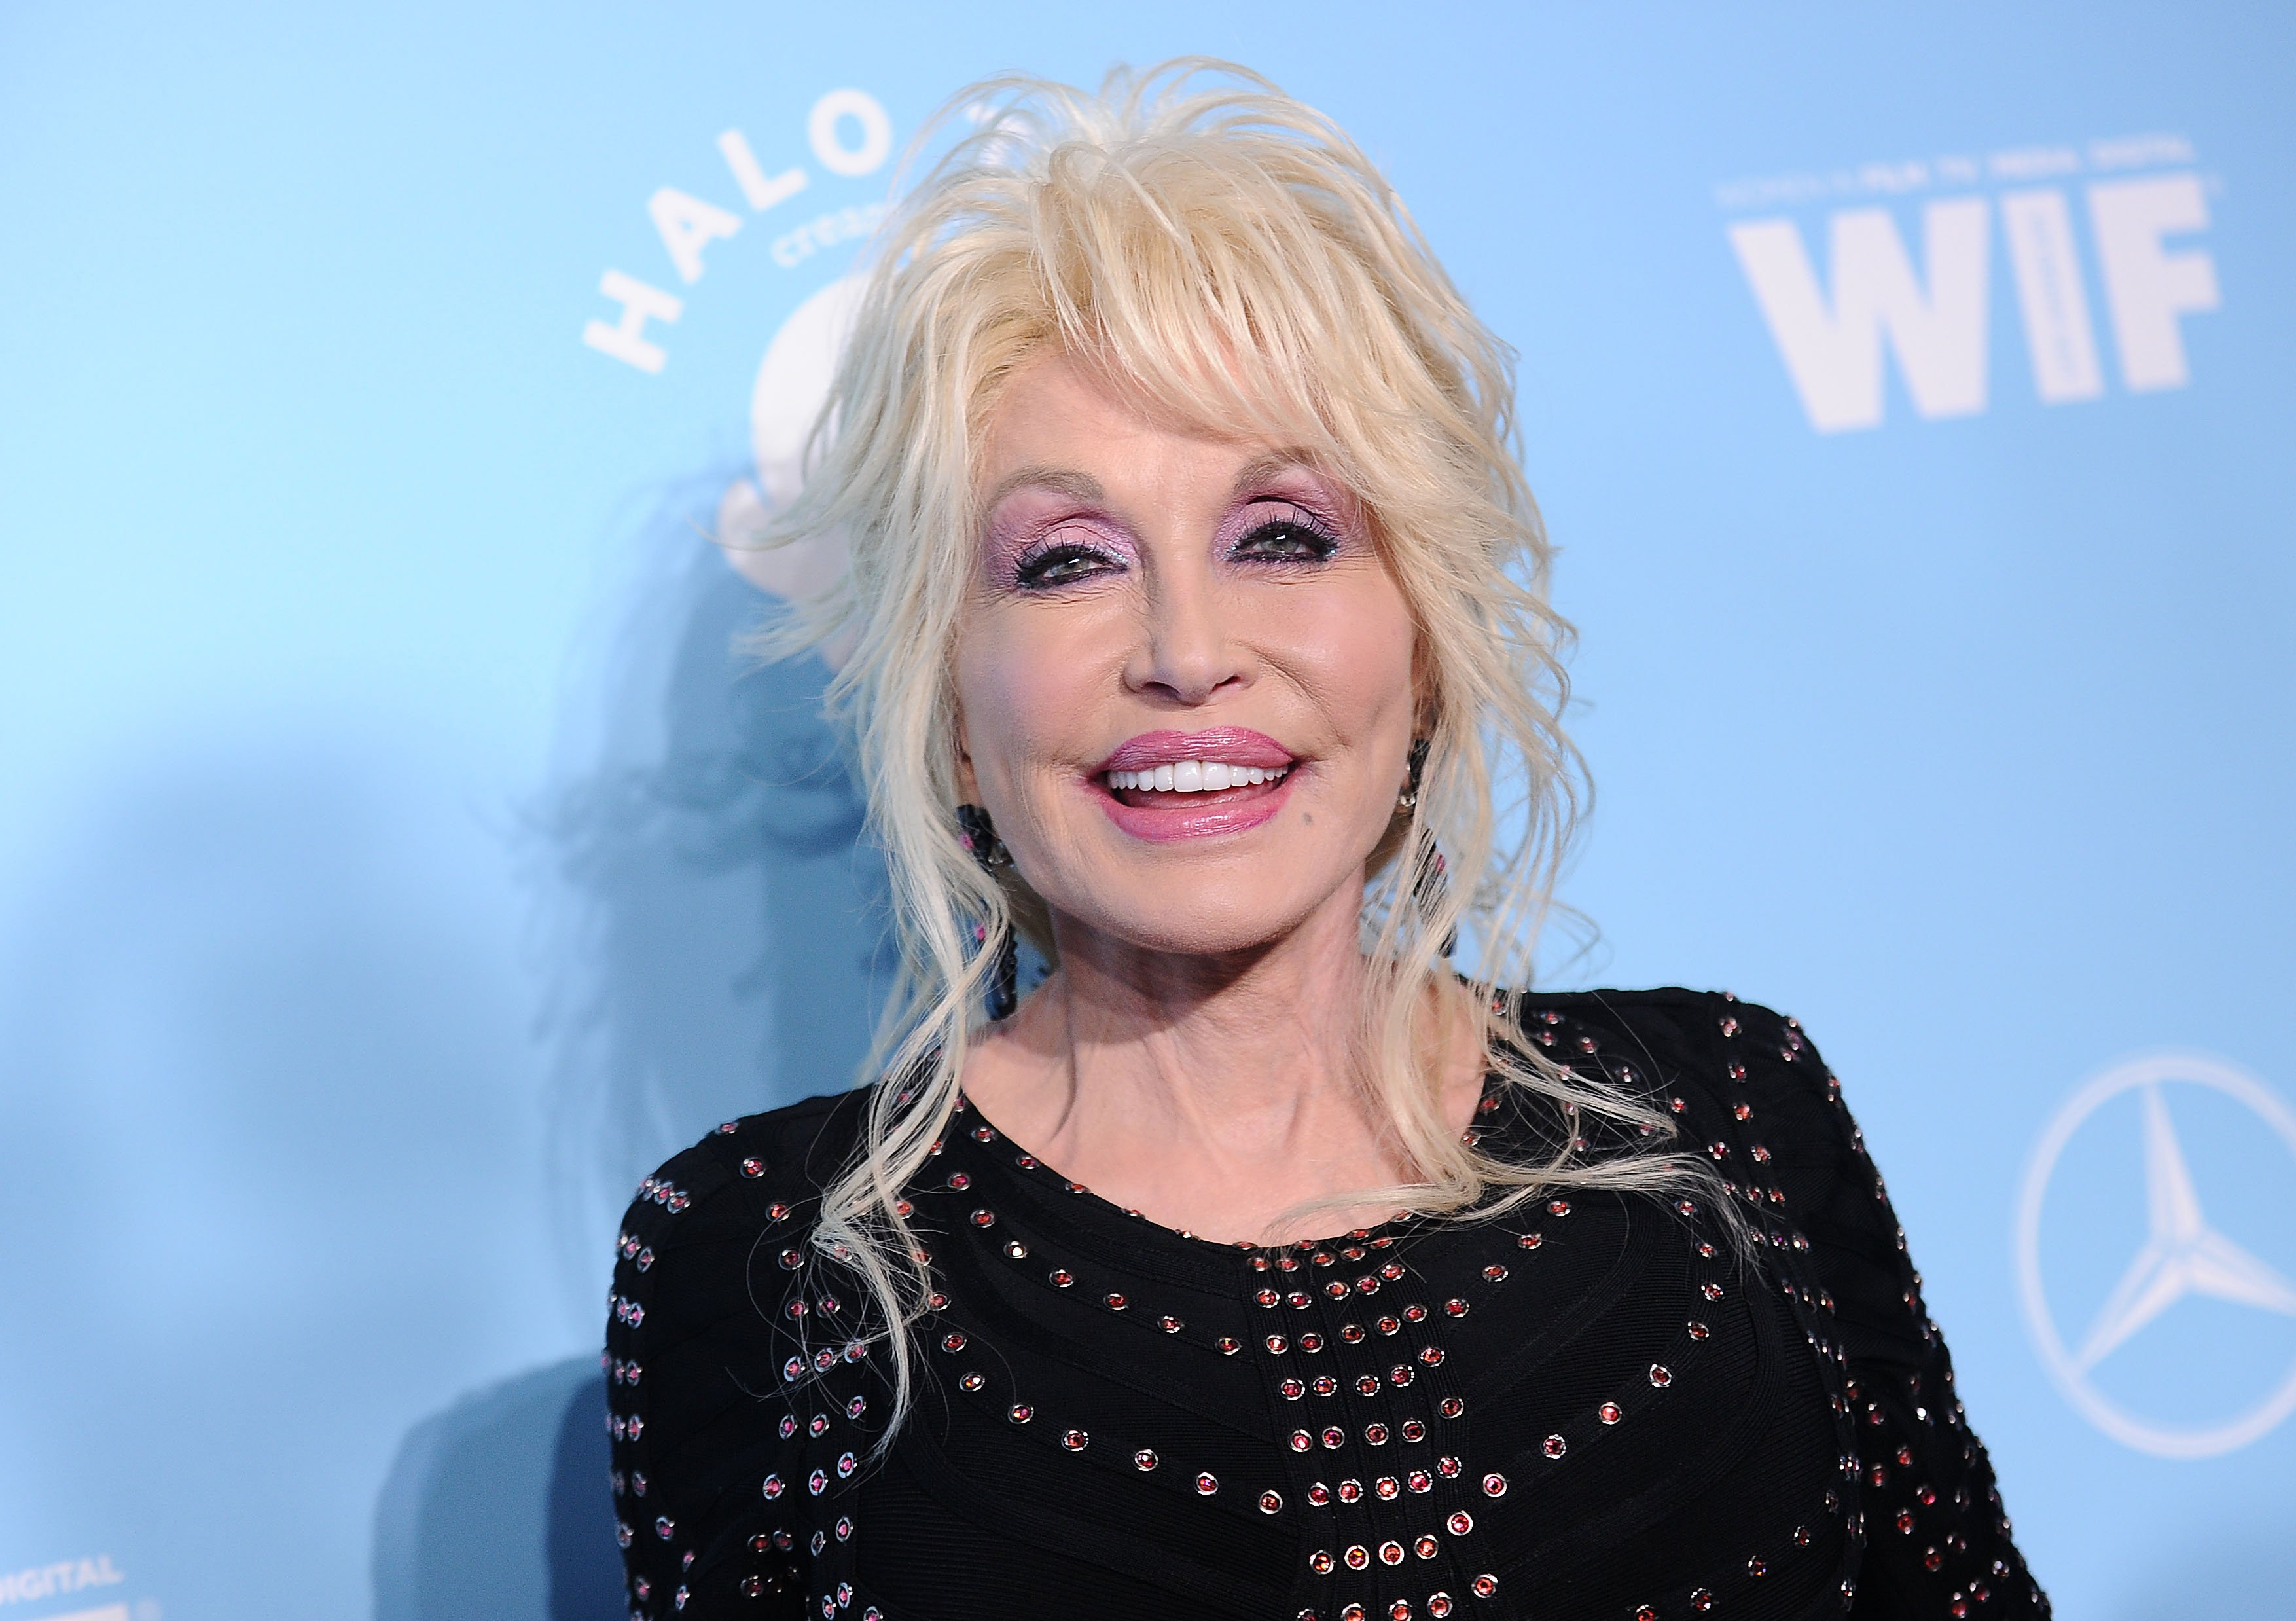 """In an interview Thursday with David Wright for ABC's """"Nightline,"""" country music icon Dolly Parton had to stand her ground when things took a political turn. Wrightbegan the interviewby bringing up Parton's role in the classic 1980's Hollywood film """"9 to 5,"""" suggesting President Donald Trump was similar to the sexist boss in the …"""